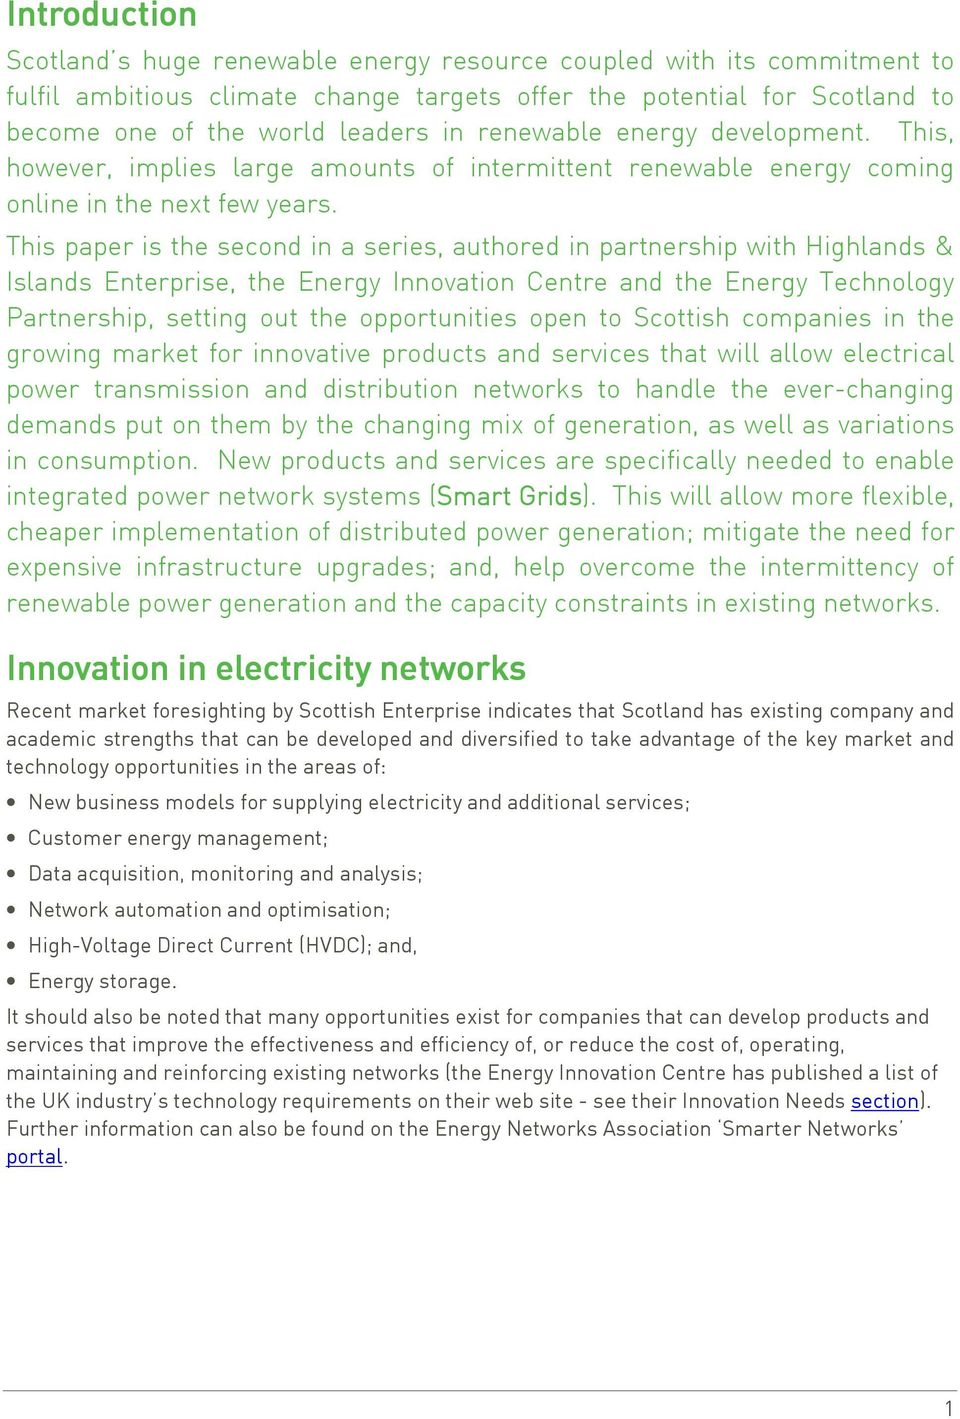 This paper is the second in a series, authored in partnership with Highlands & Islands Enterprise, the Energy Innovation Centre and the Energy Technology Partnership, setting out the opportunities